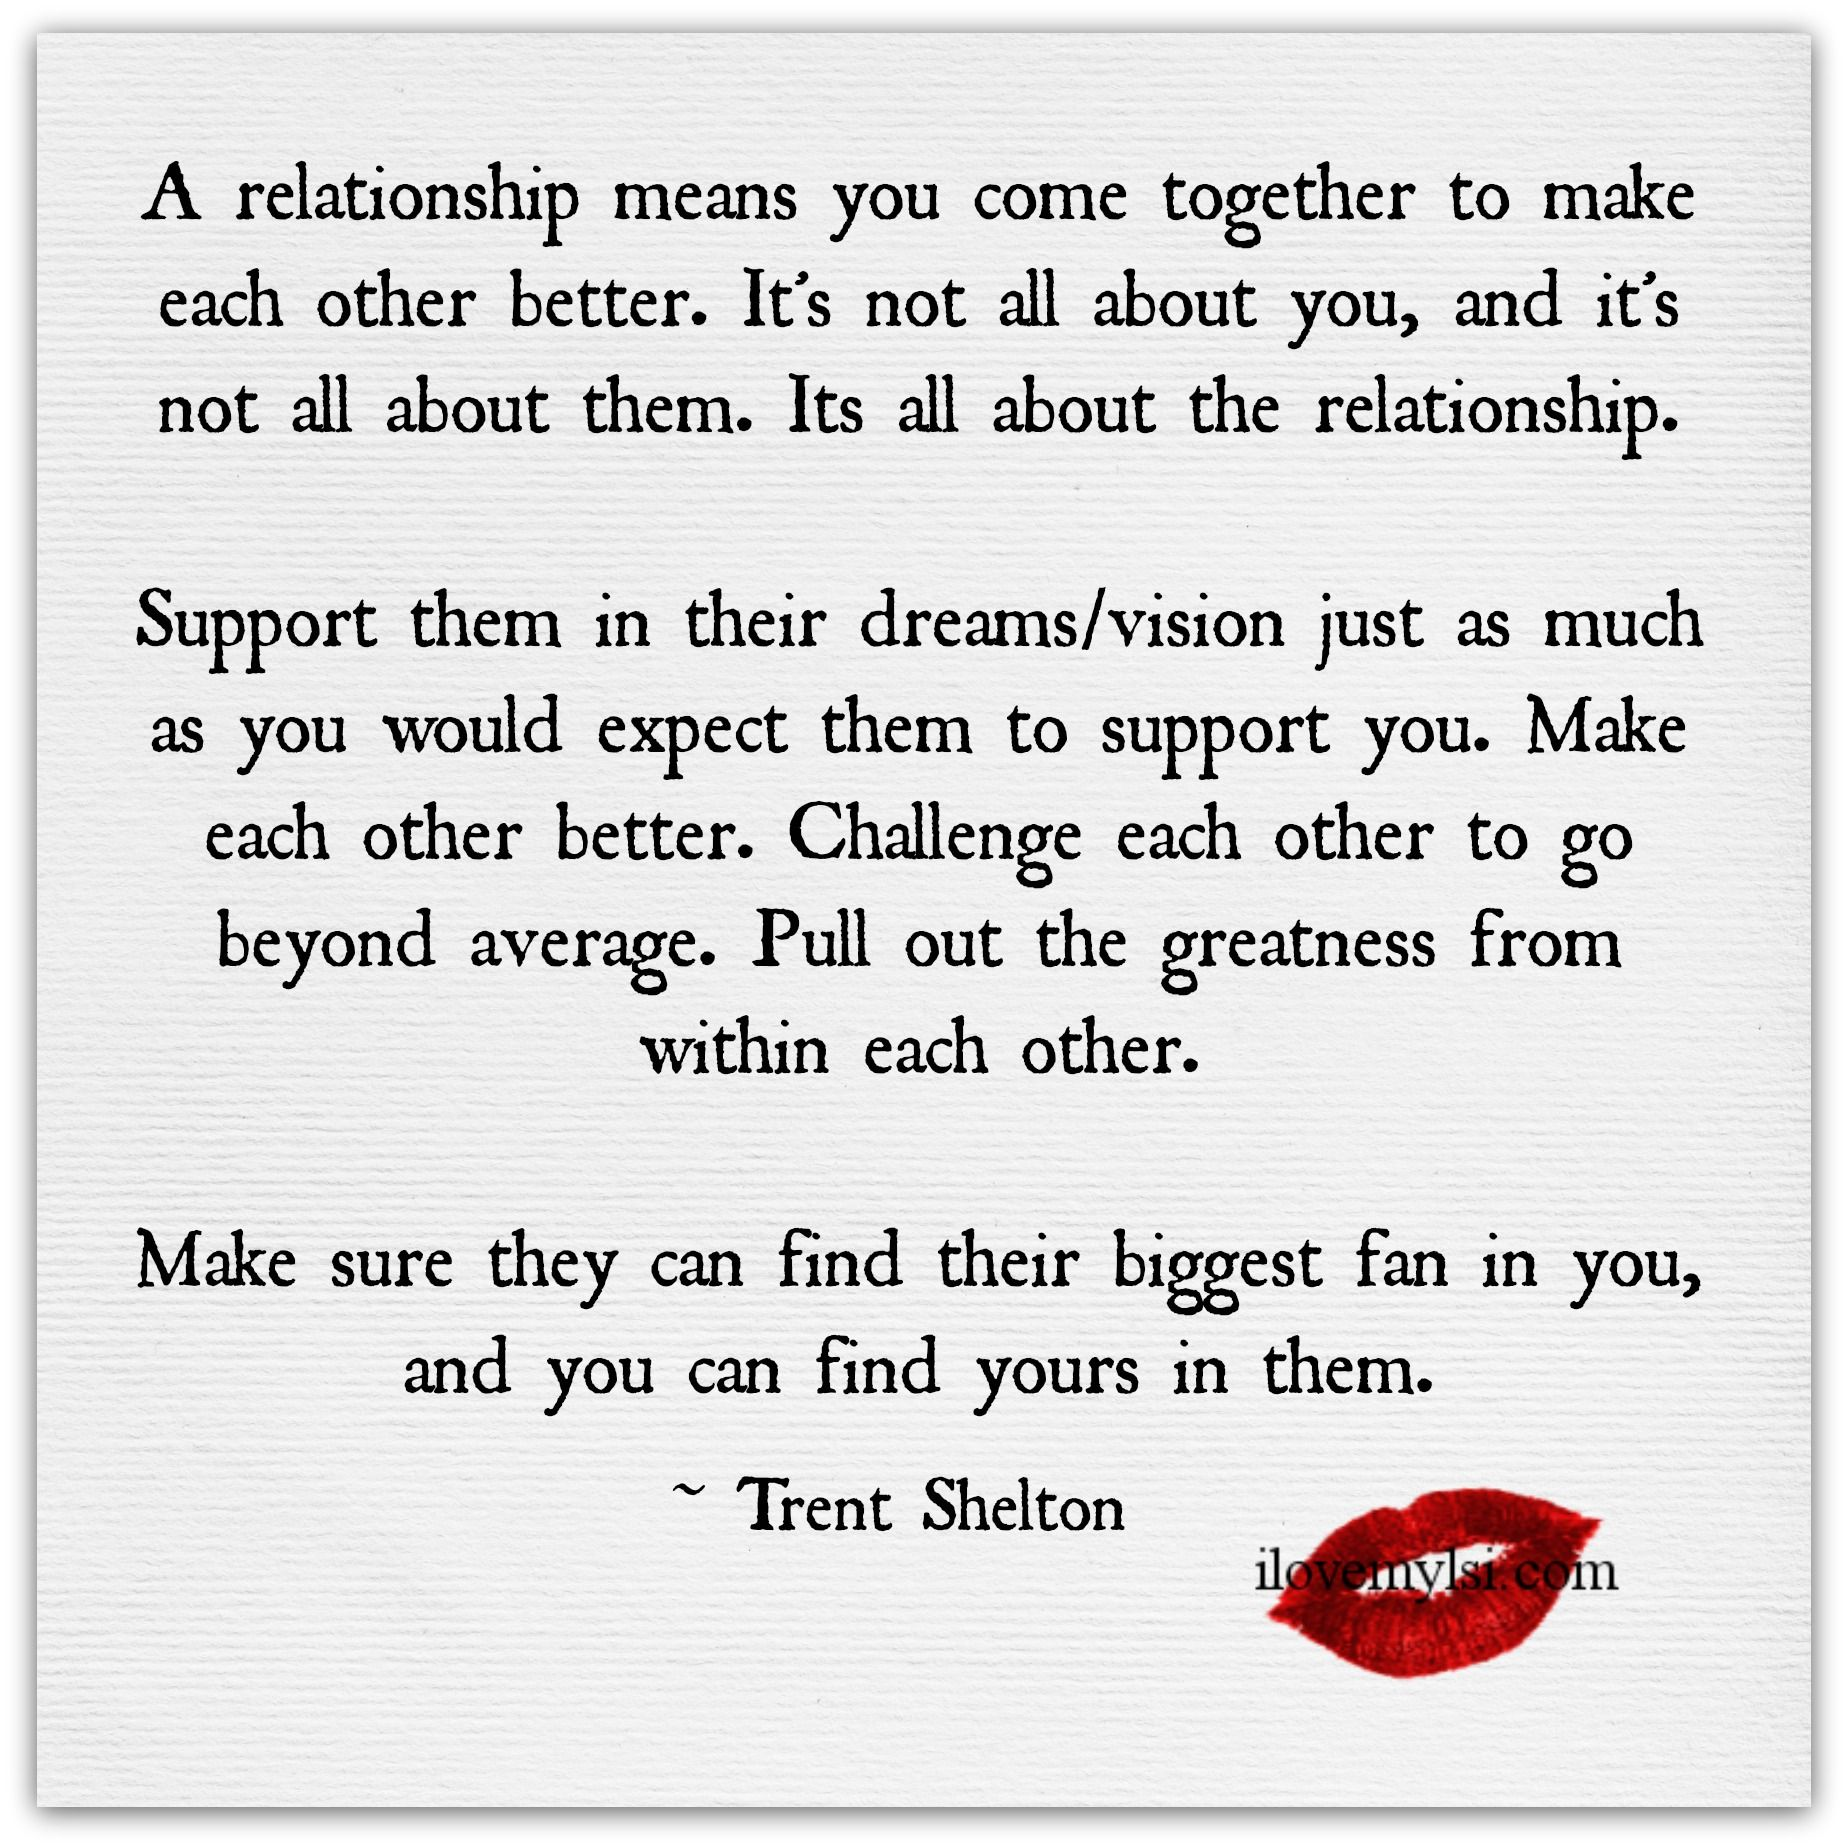 Quotes About Love Relationships: A Relationship Means You Come Together